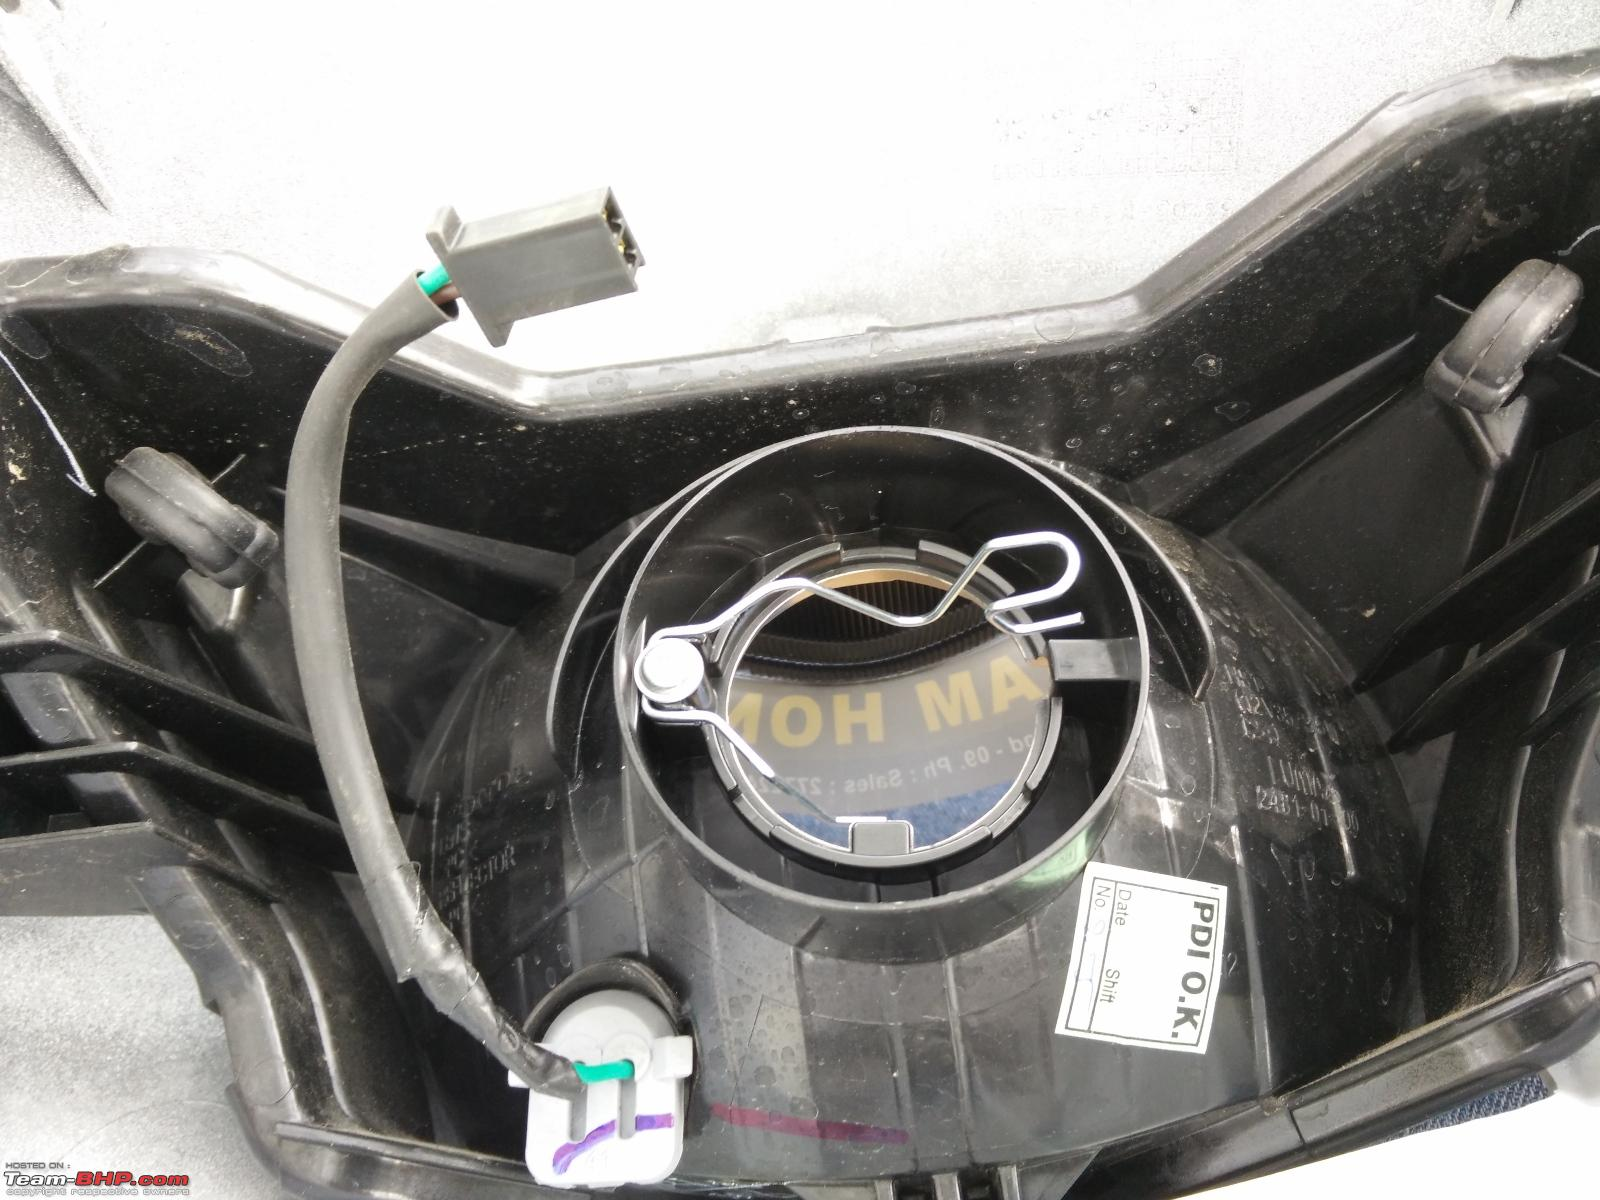 Honda Activa DIY: Headlight upgrade and LEDs for indicators + tail lamps-6.